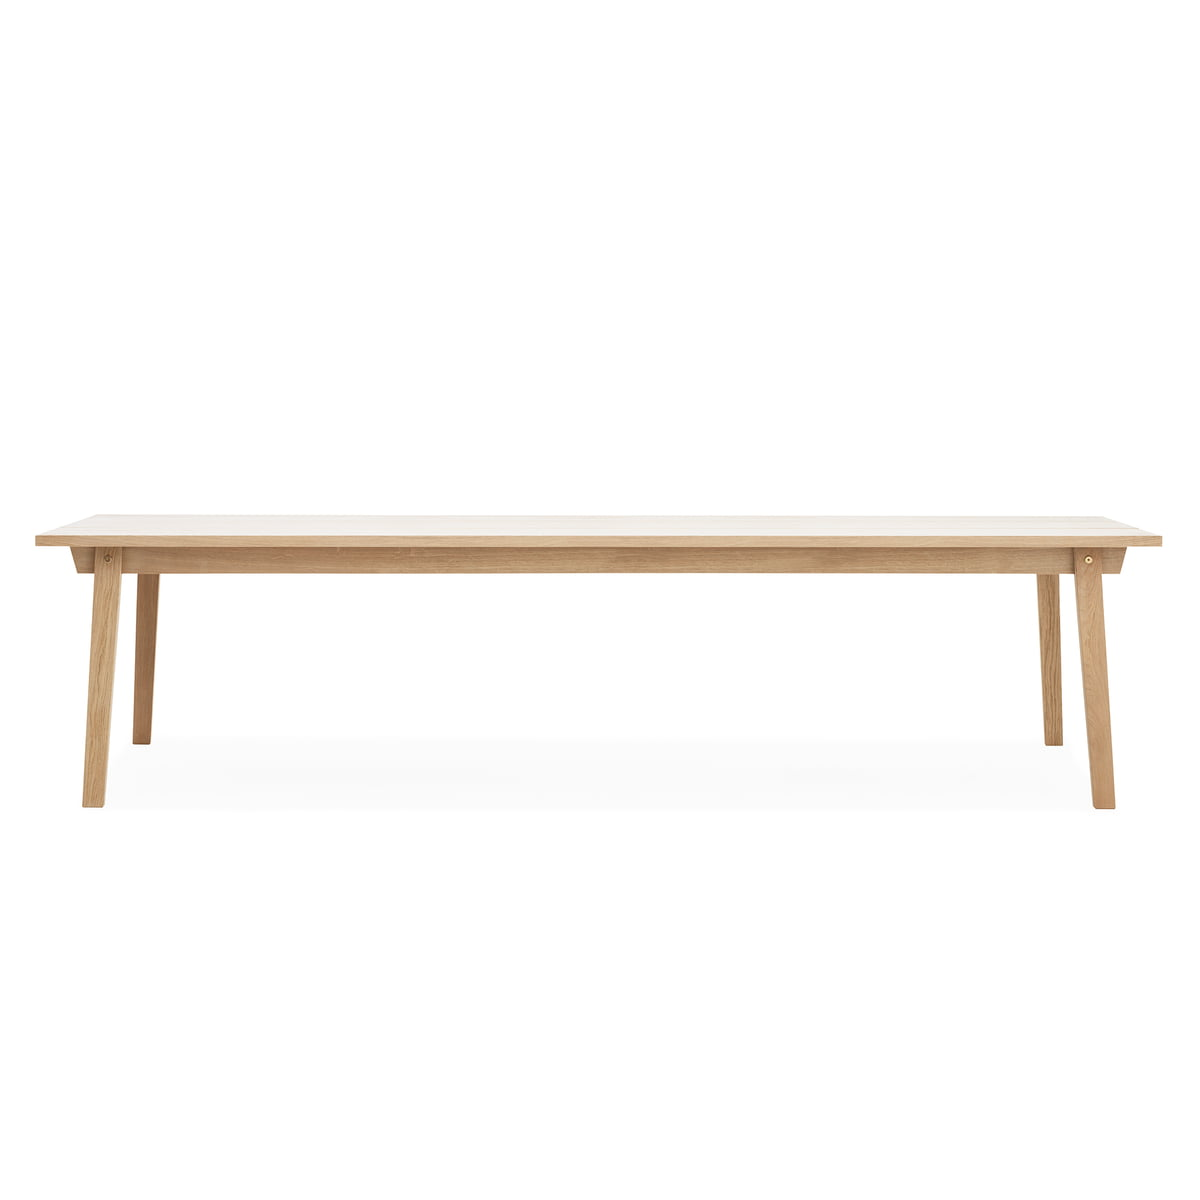 Normann copenhagen slice table wood 90 x 300 cm eiche eiche geseift t 90 h 74 b 300 online for Table 300 cm